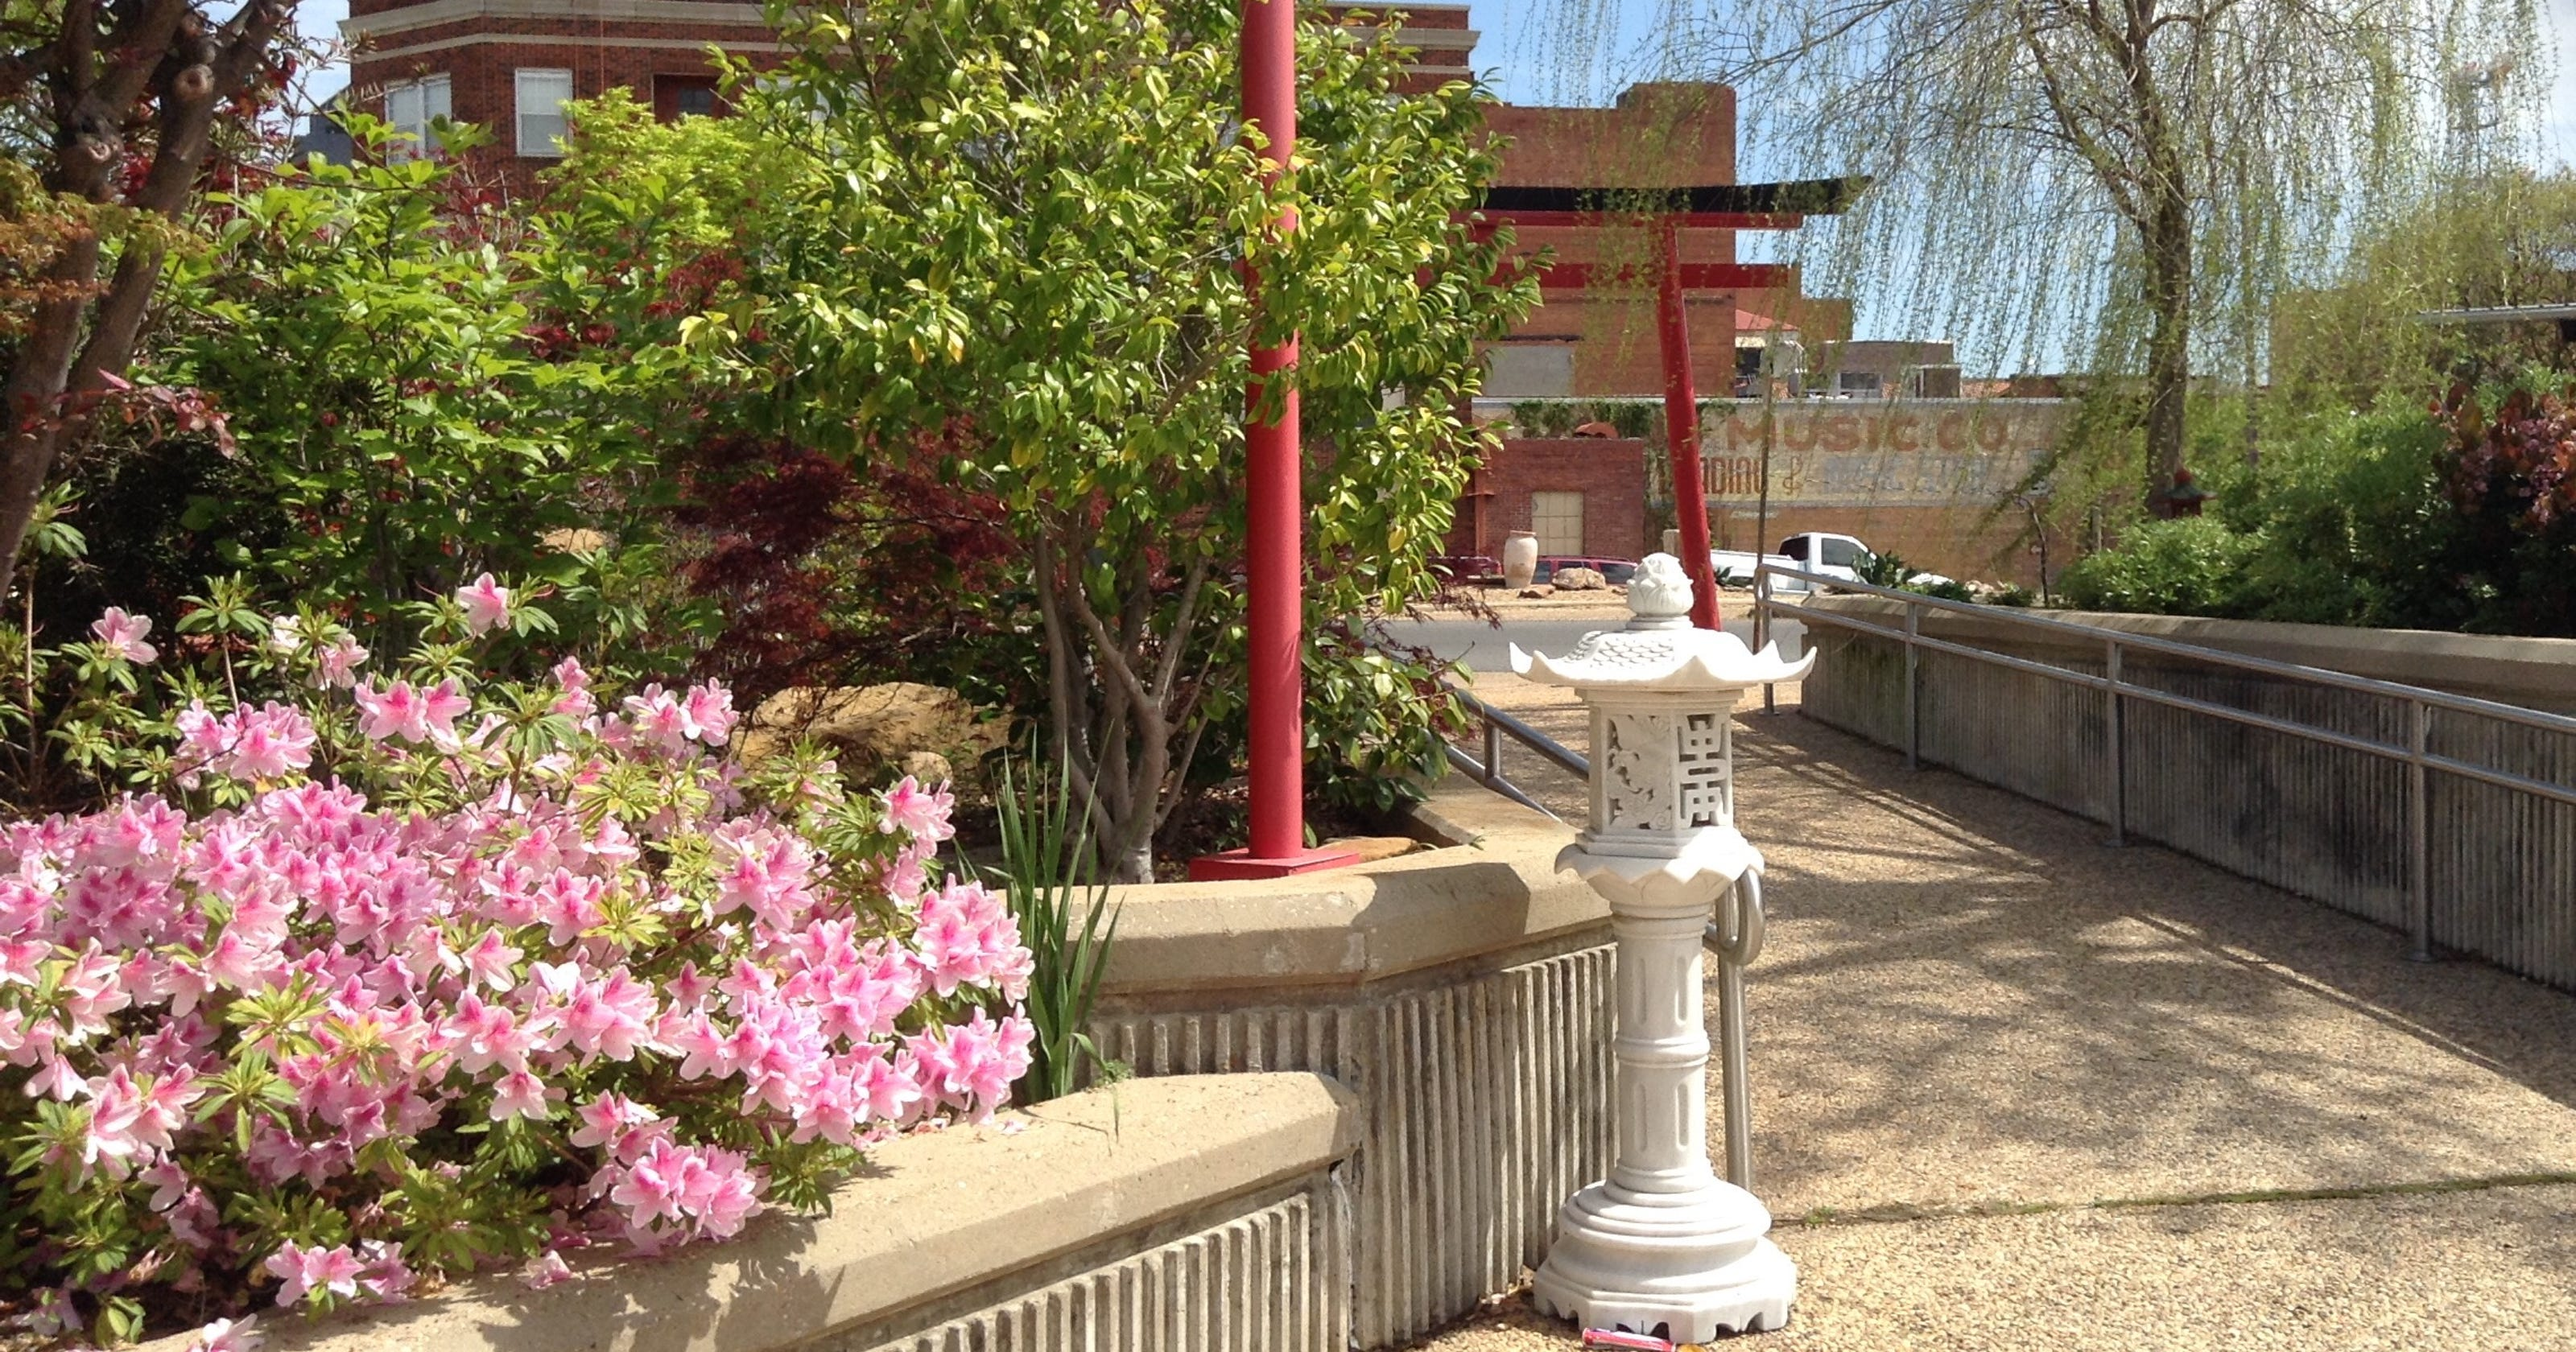 Asian Gardens: A culture takes root in Shreveport